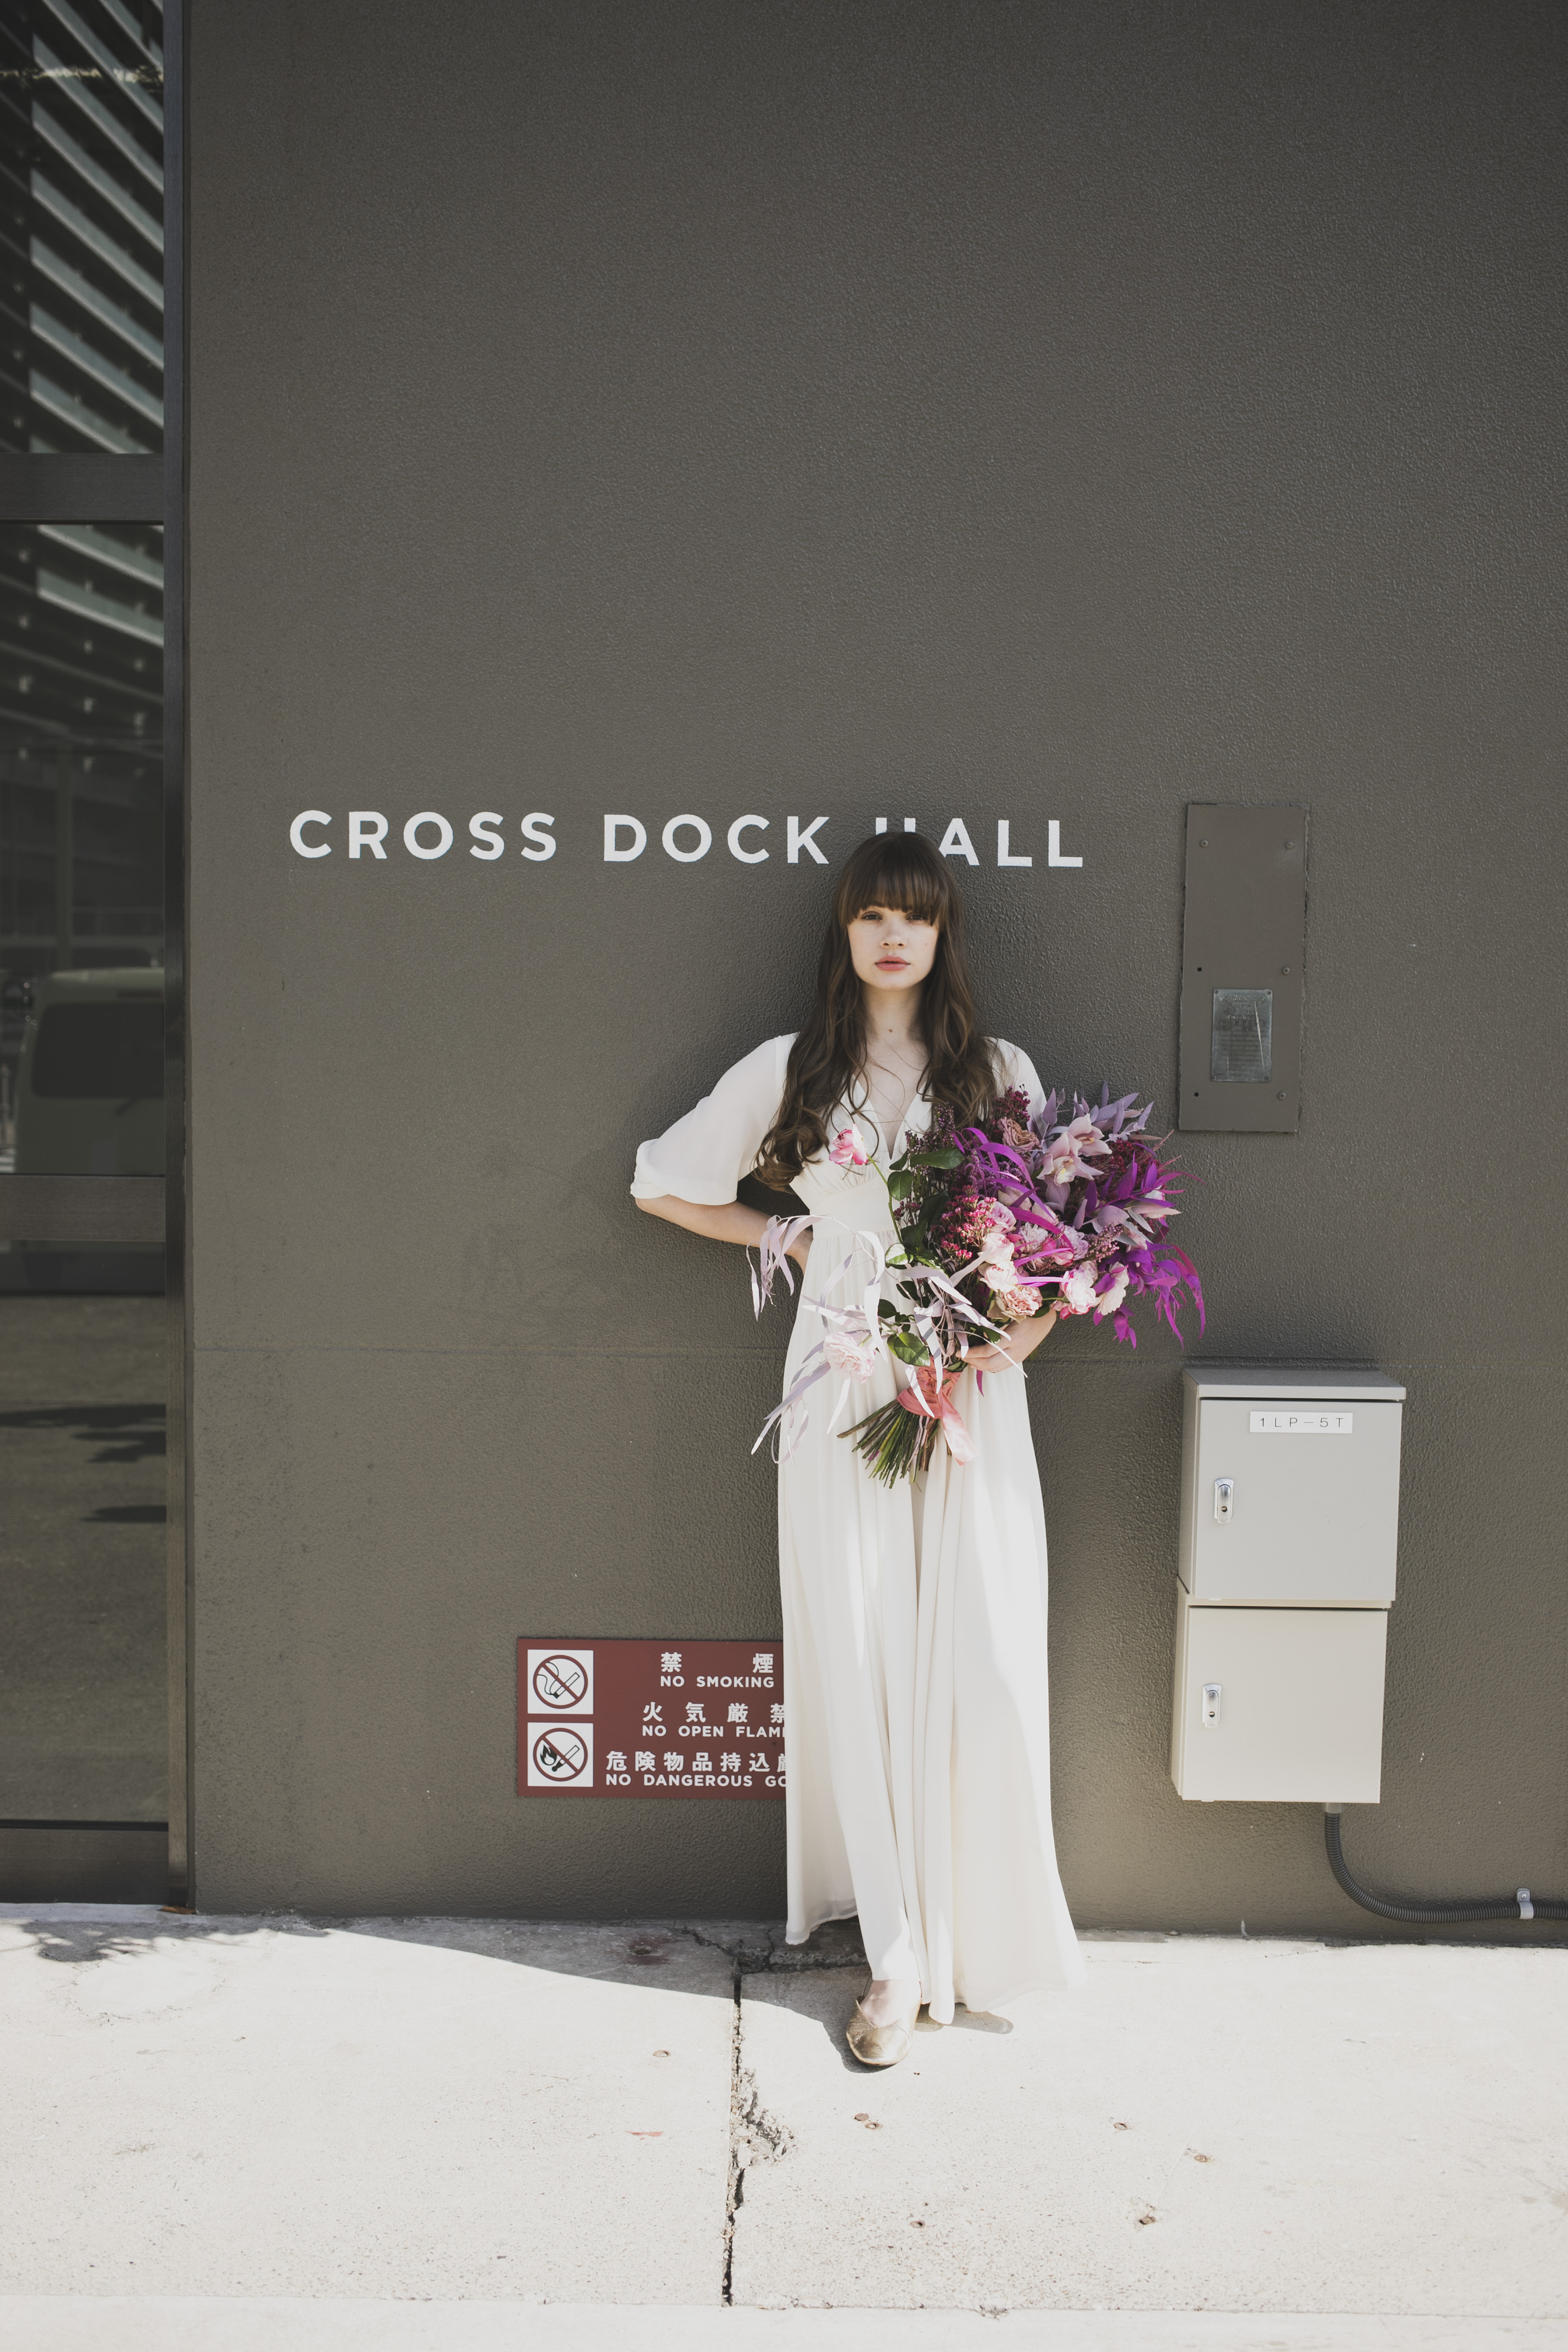 201024_CROSS DOCK_PROMOTION_1